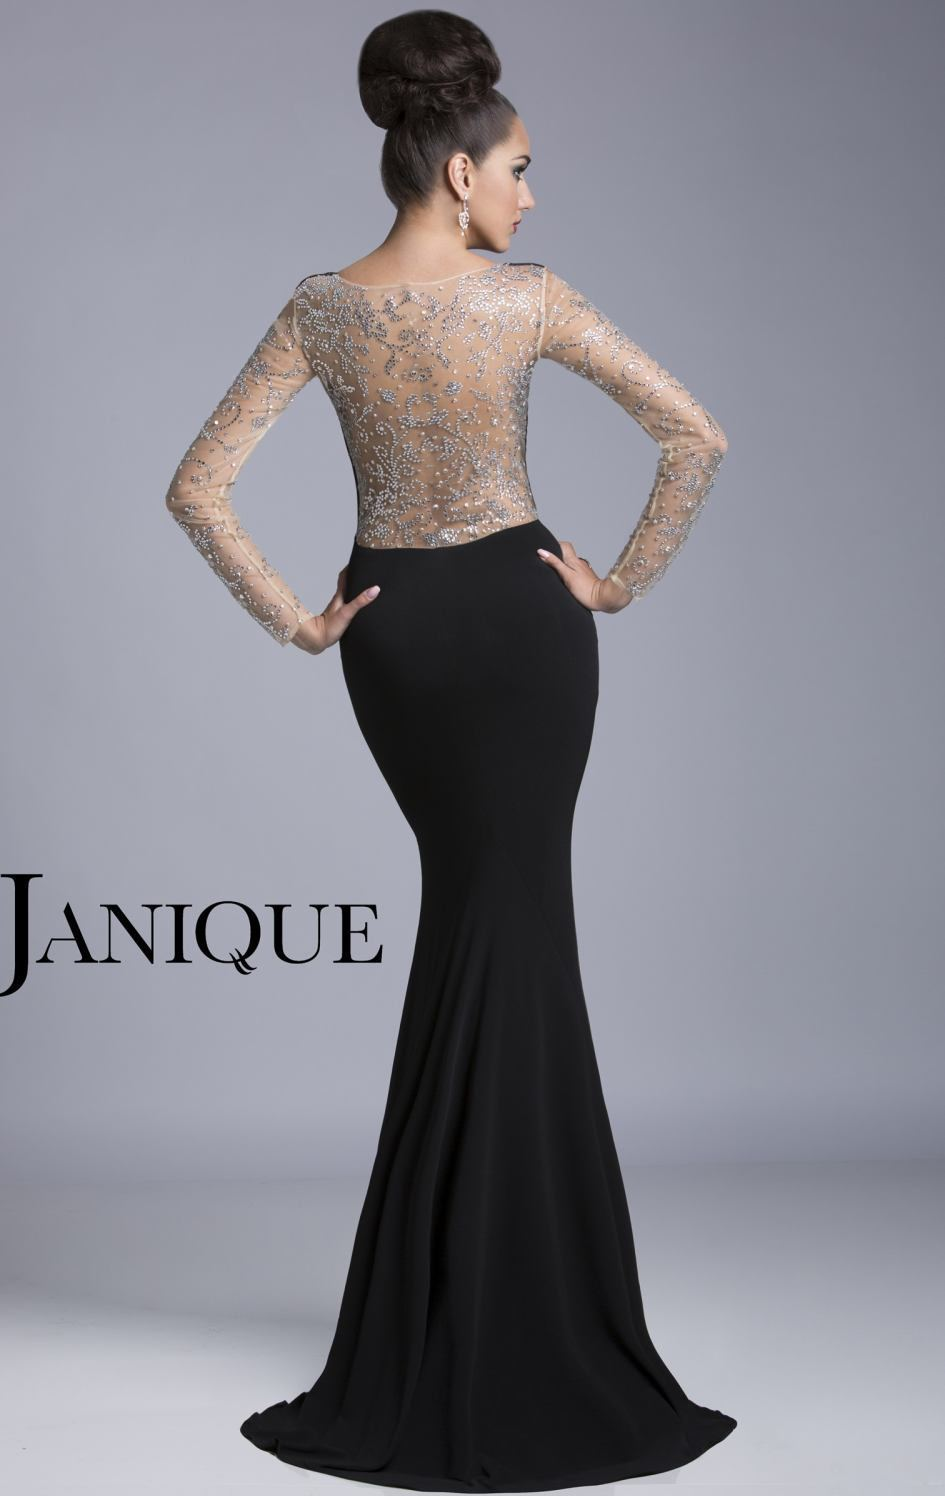 Janique Prom Dress And Maxi Collection